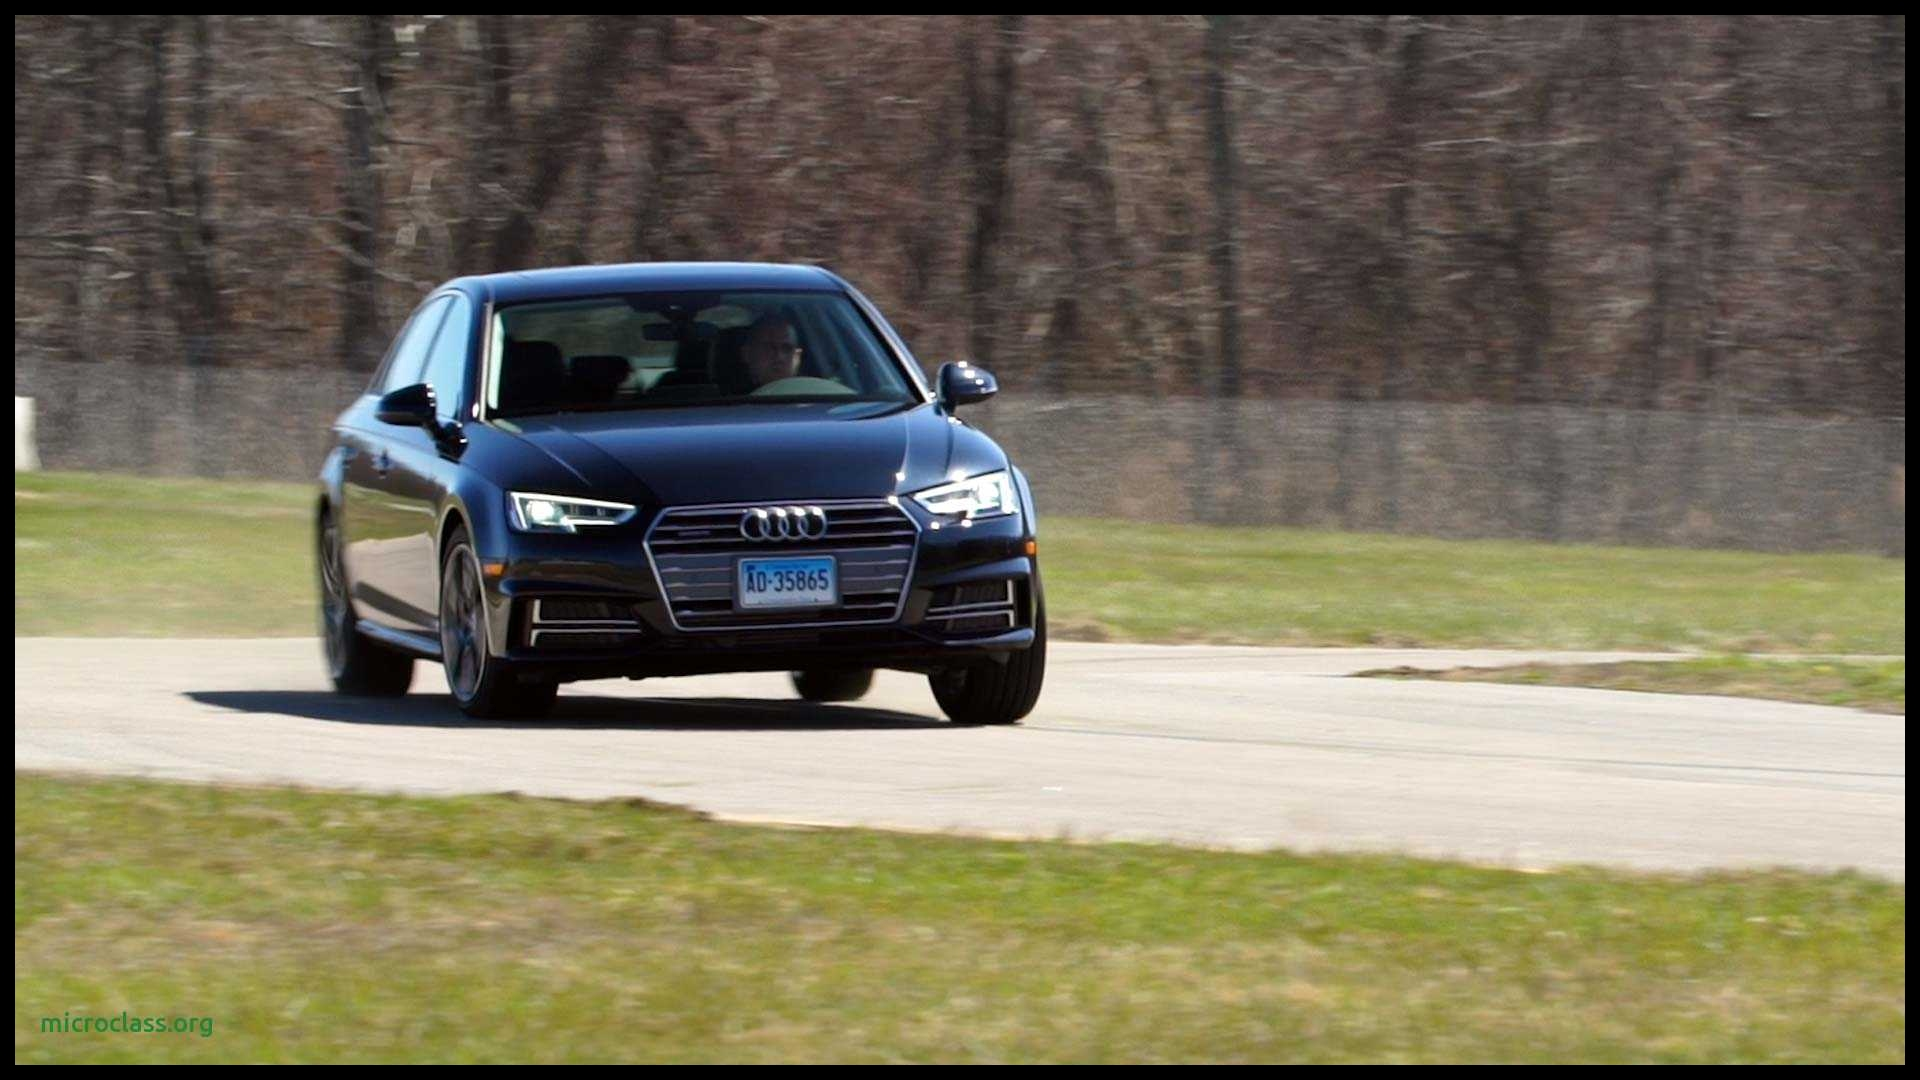 2017 Audi A4 Reviews Ratings Prices Consumer Reports Best 2019 Audi A4 New Interior